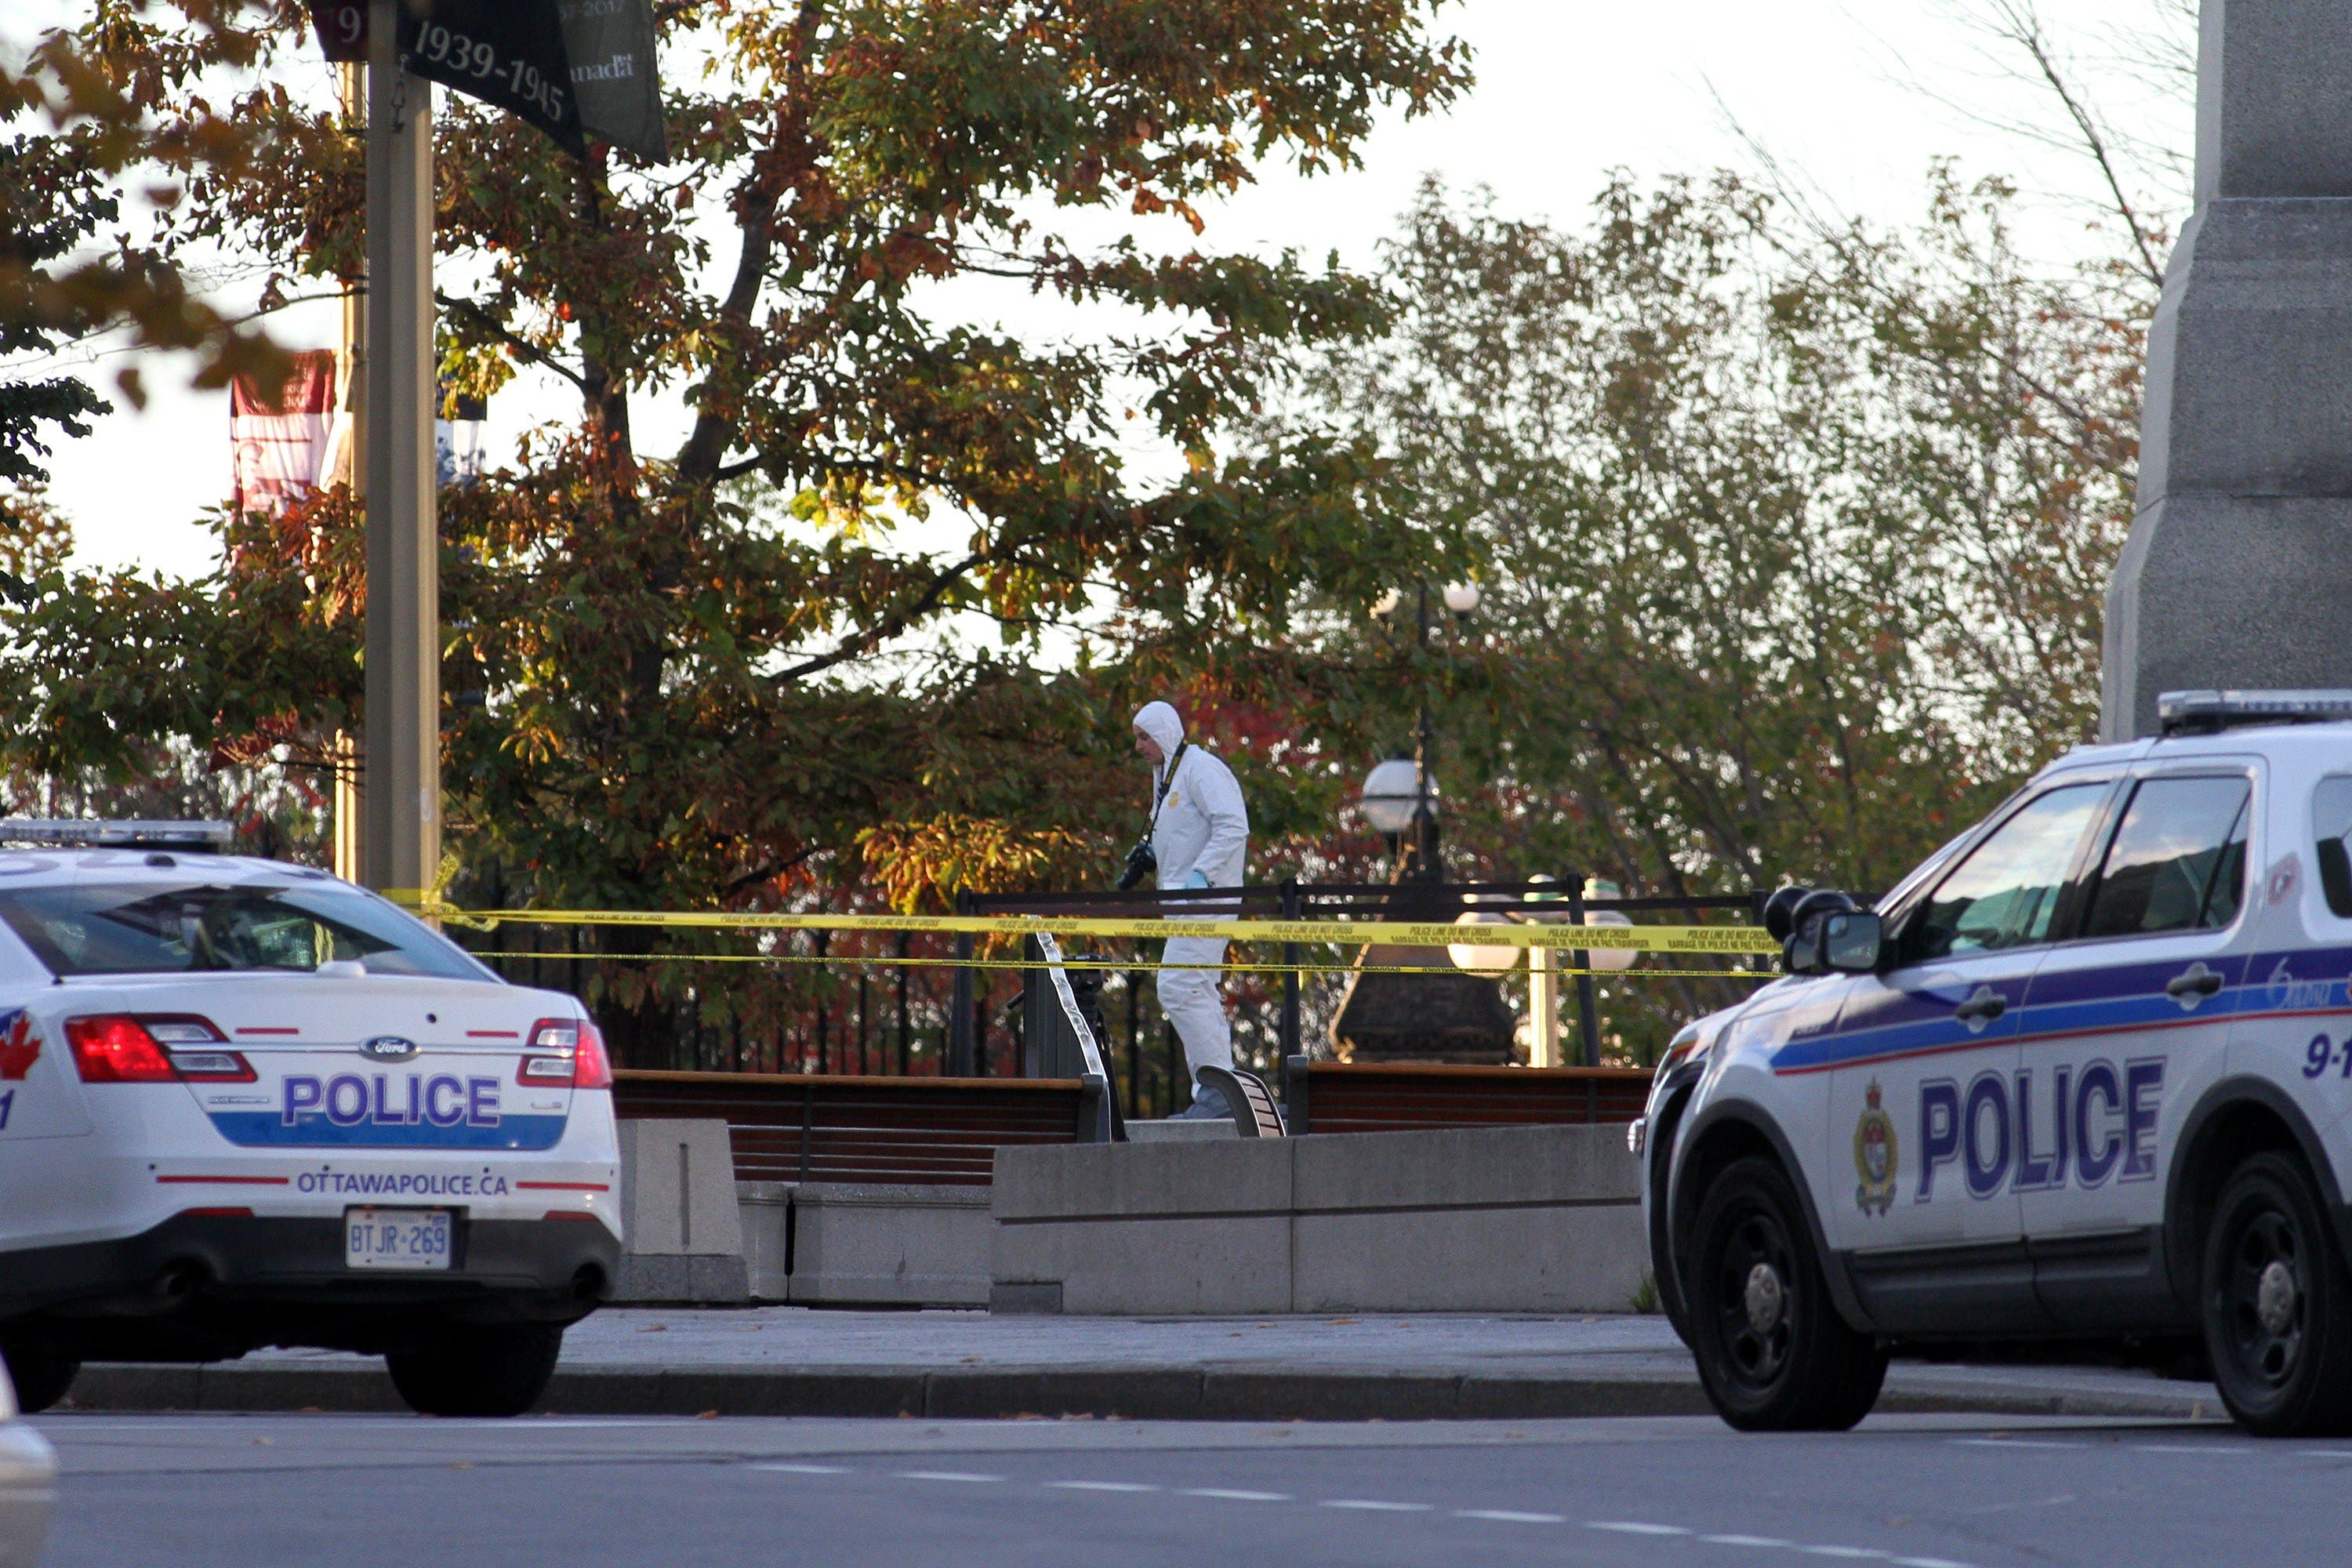 Forensic police officers work near the National War Memorial in Ottawa, Canada on Wednesday October 22, 2014 after a gunman opened fire killing a soldier before entering Parliament Hill and firing several shots in the building. AFP